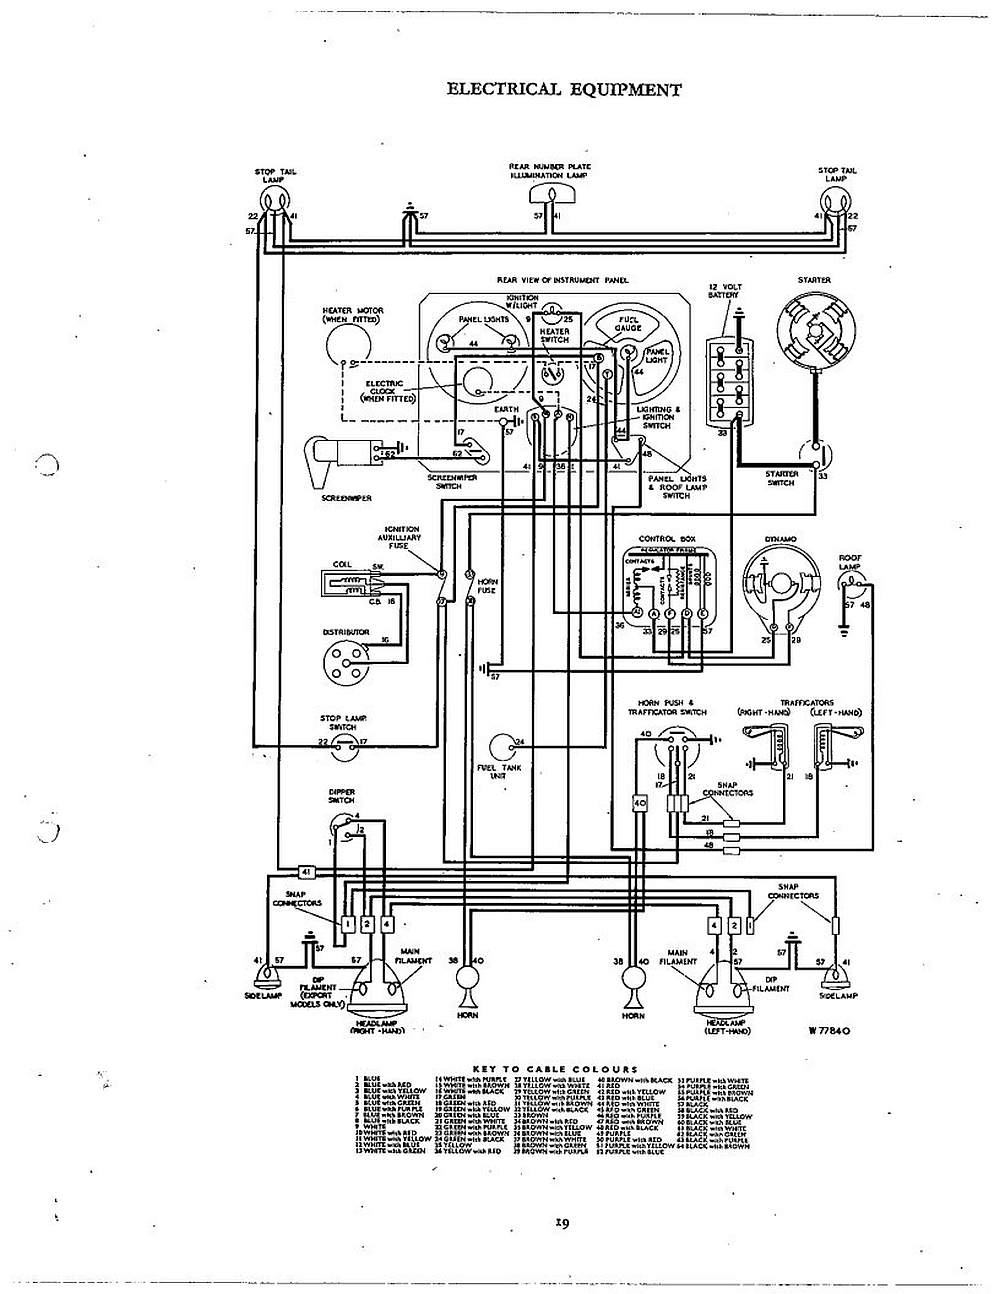 Triumph Tr6 Wiring Diagram 1971 Nova Librarytriumph Diagrams Archive Of Automotive U2022